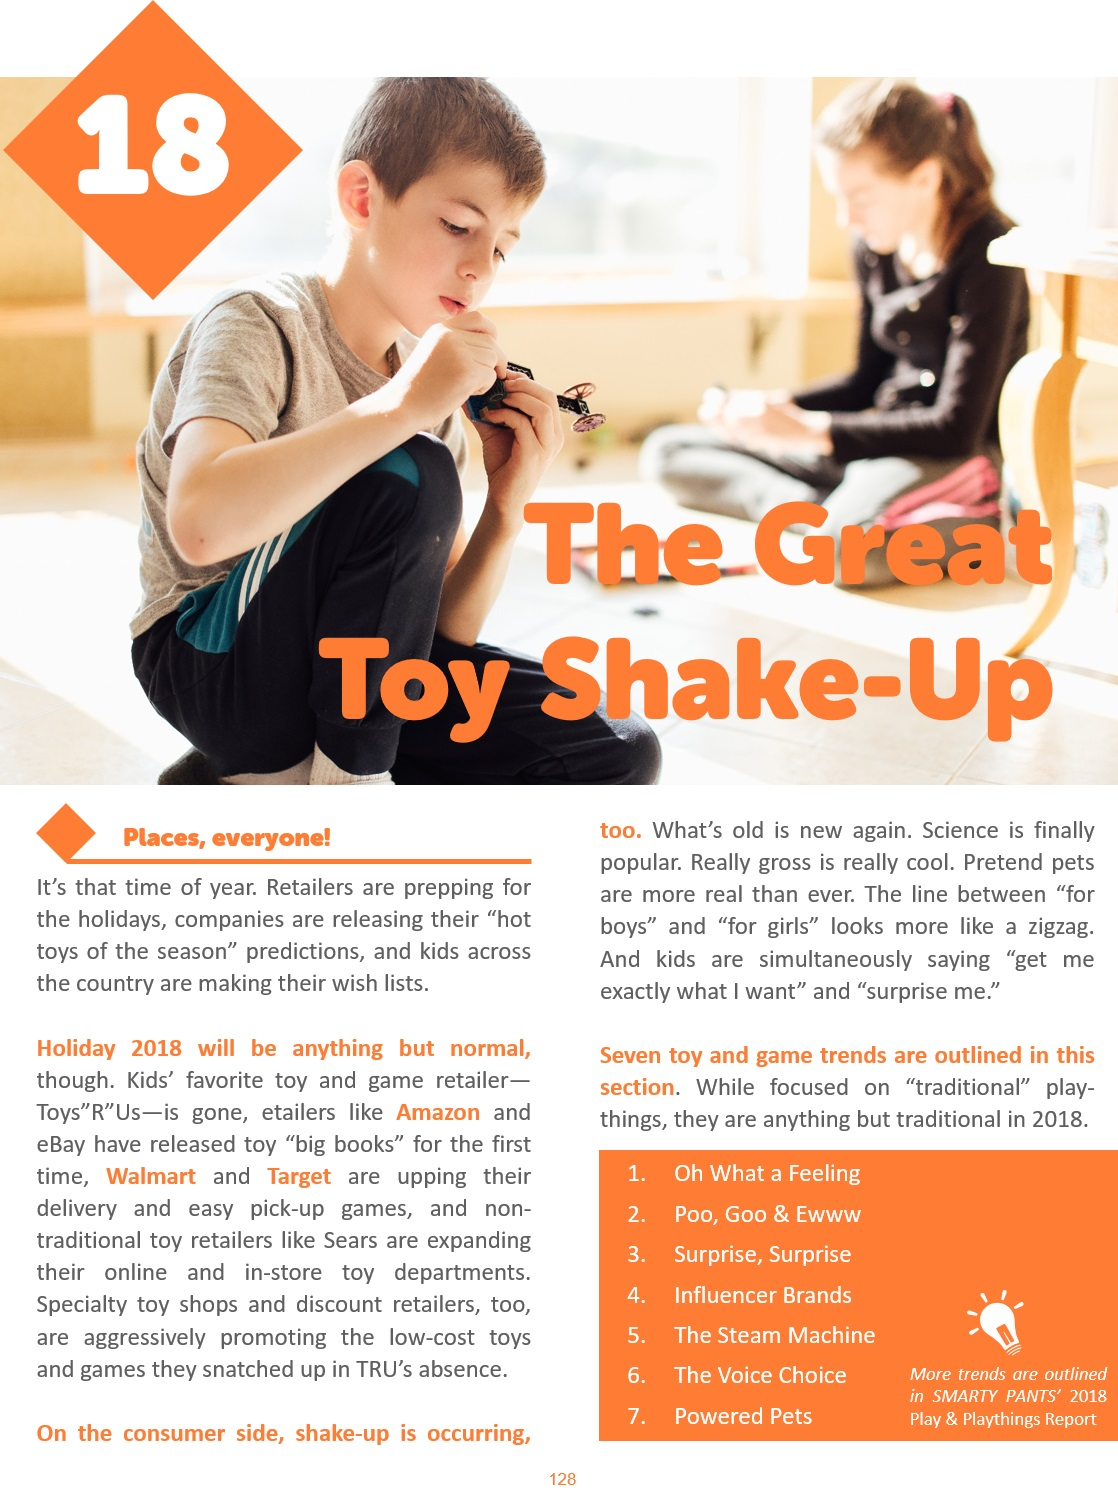 The Great Toy Shake-Up Preview